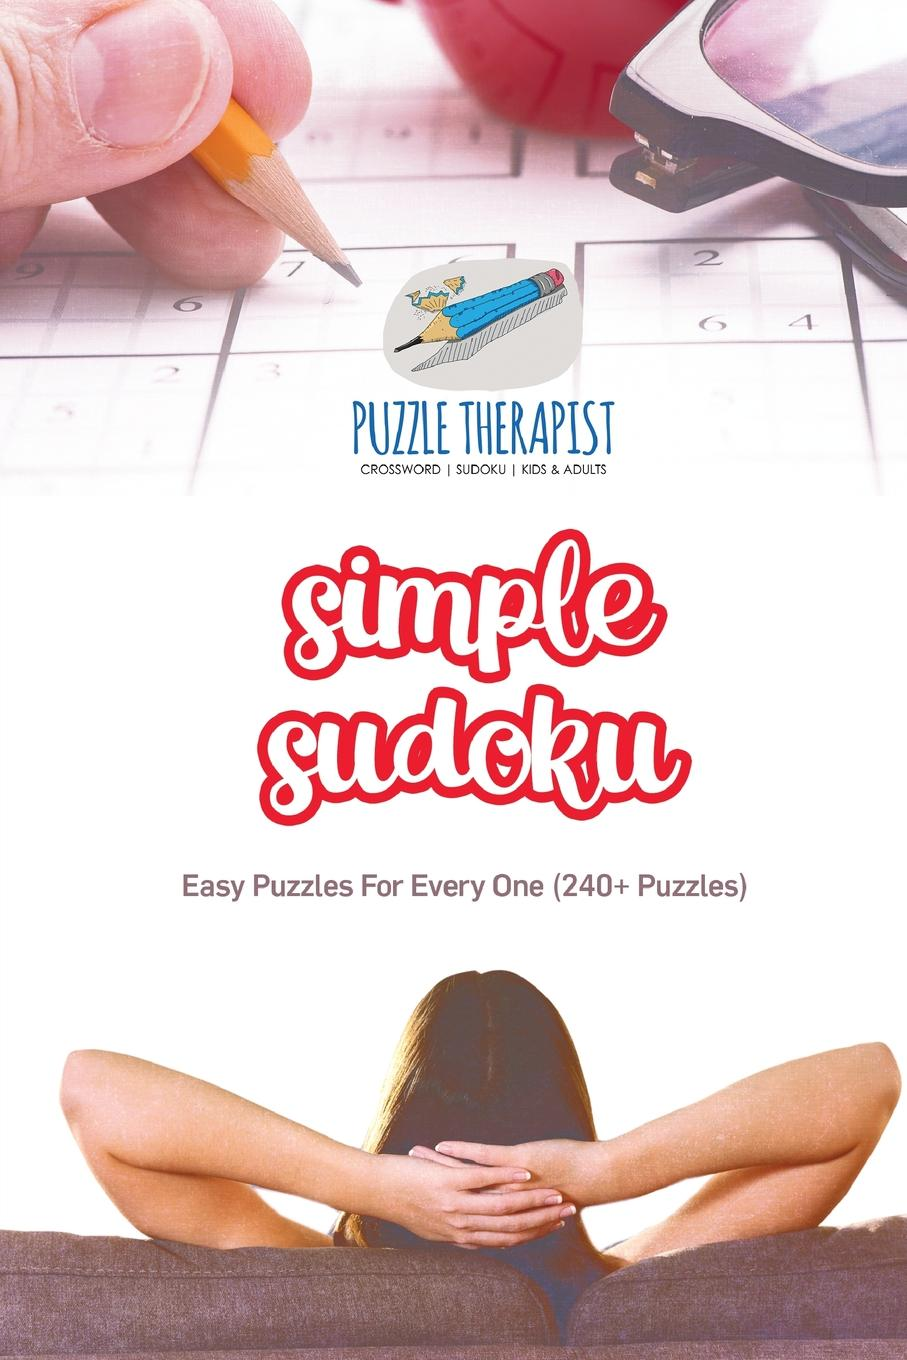 Puzzle Therapist Simple Sudoku . Easy Puzzles For Every One (240. Puzzles) own your game